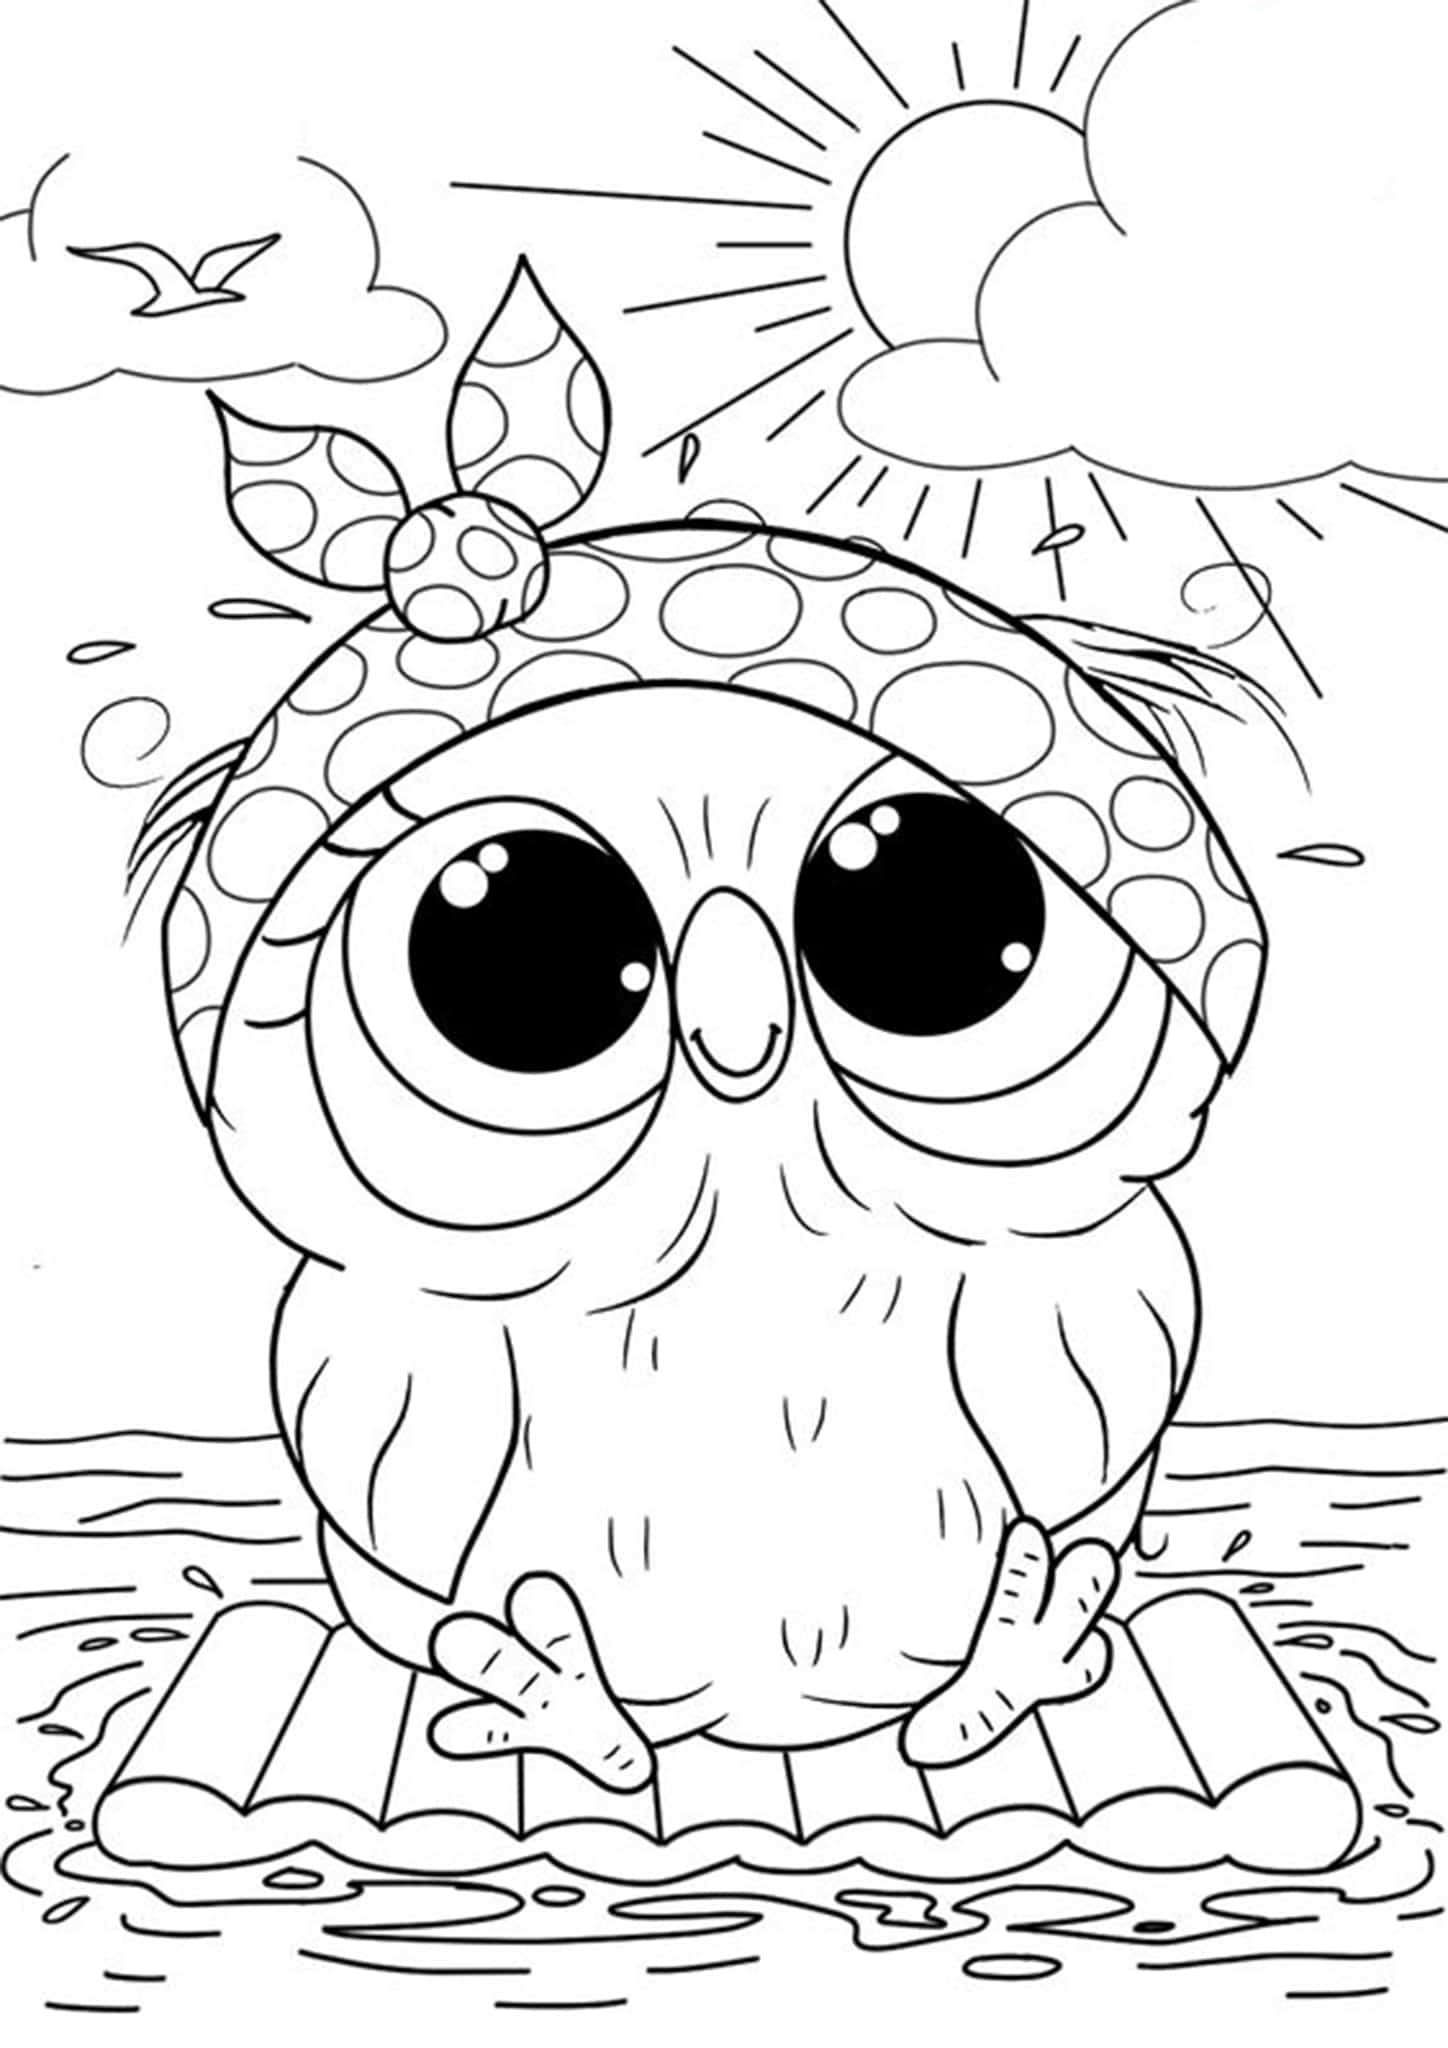 kids easy coloring book easy coloring pages to download and print for free easy book coloring kids